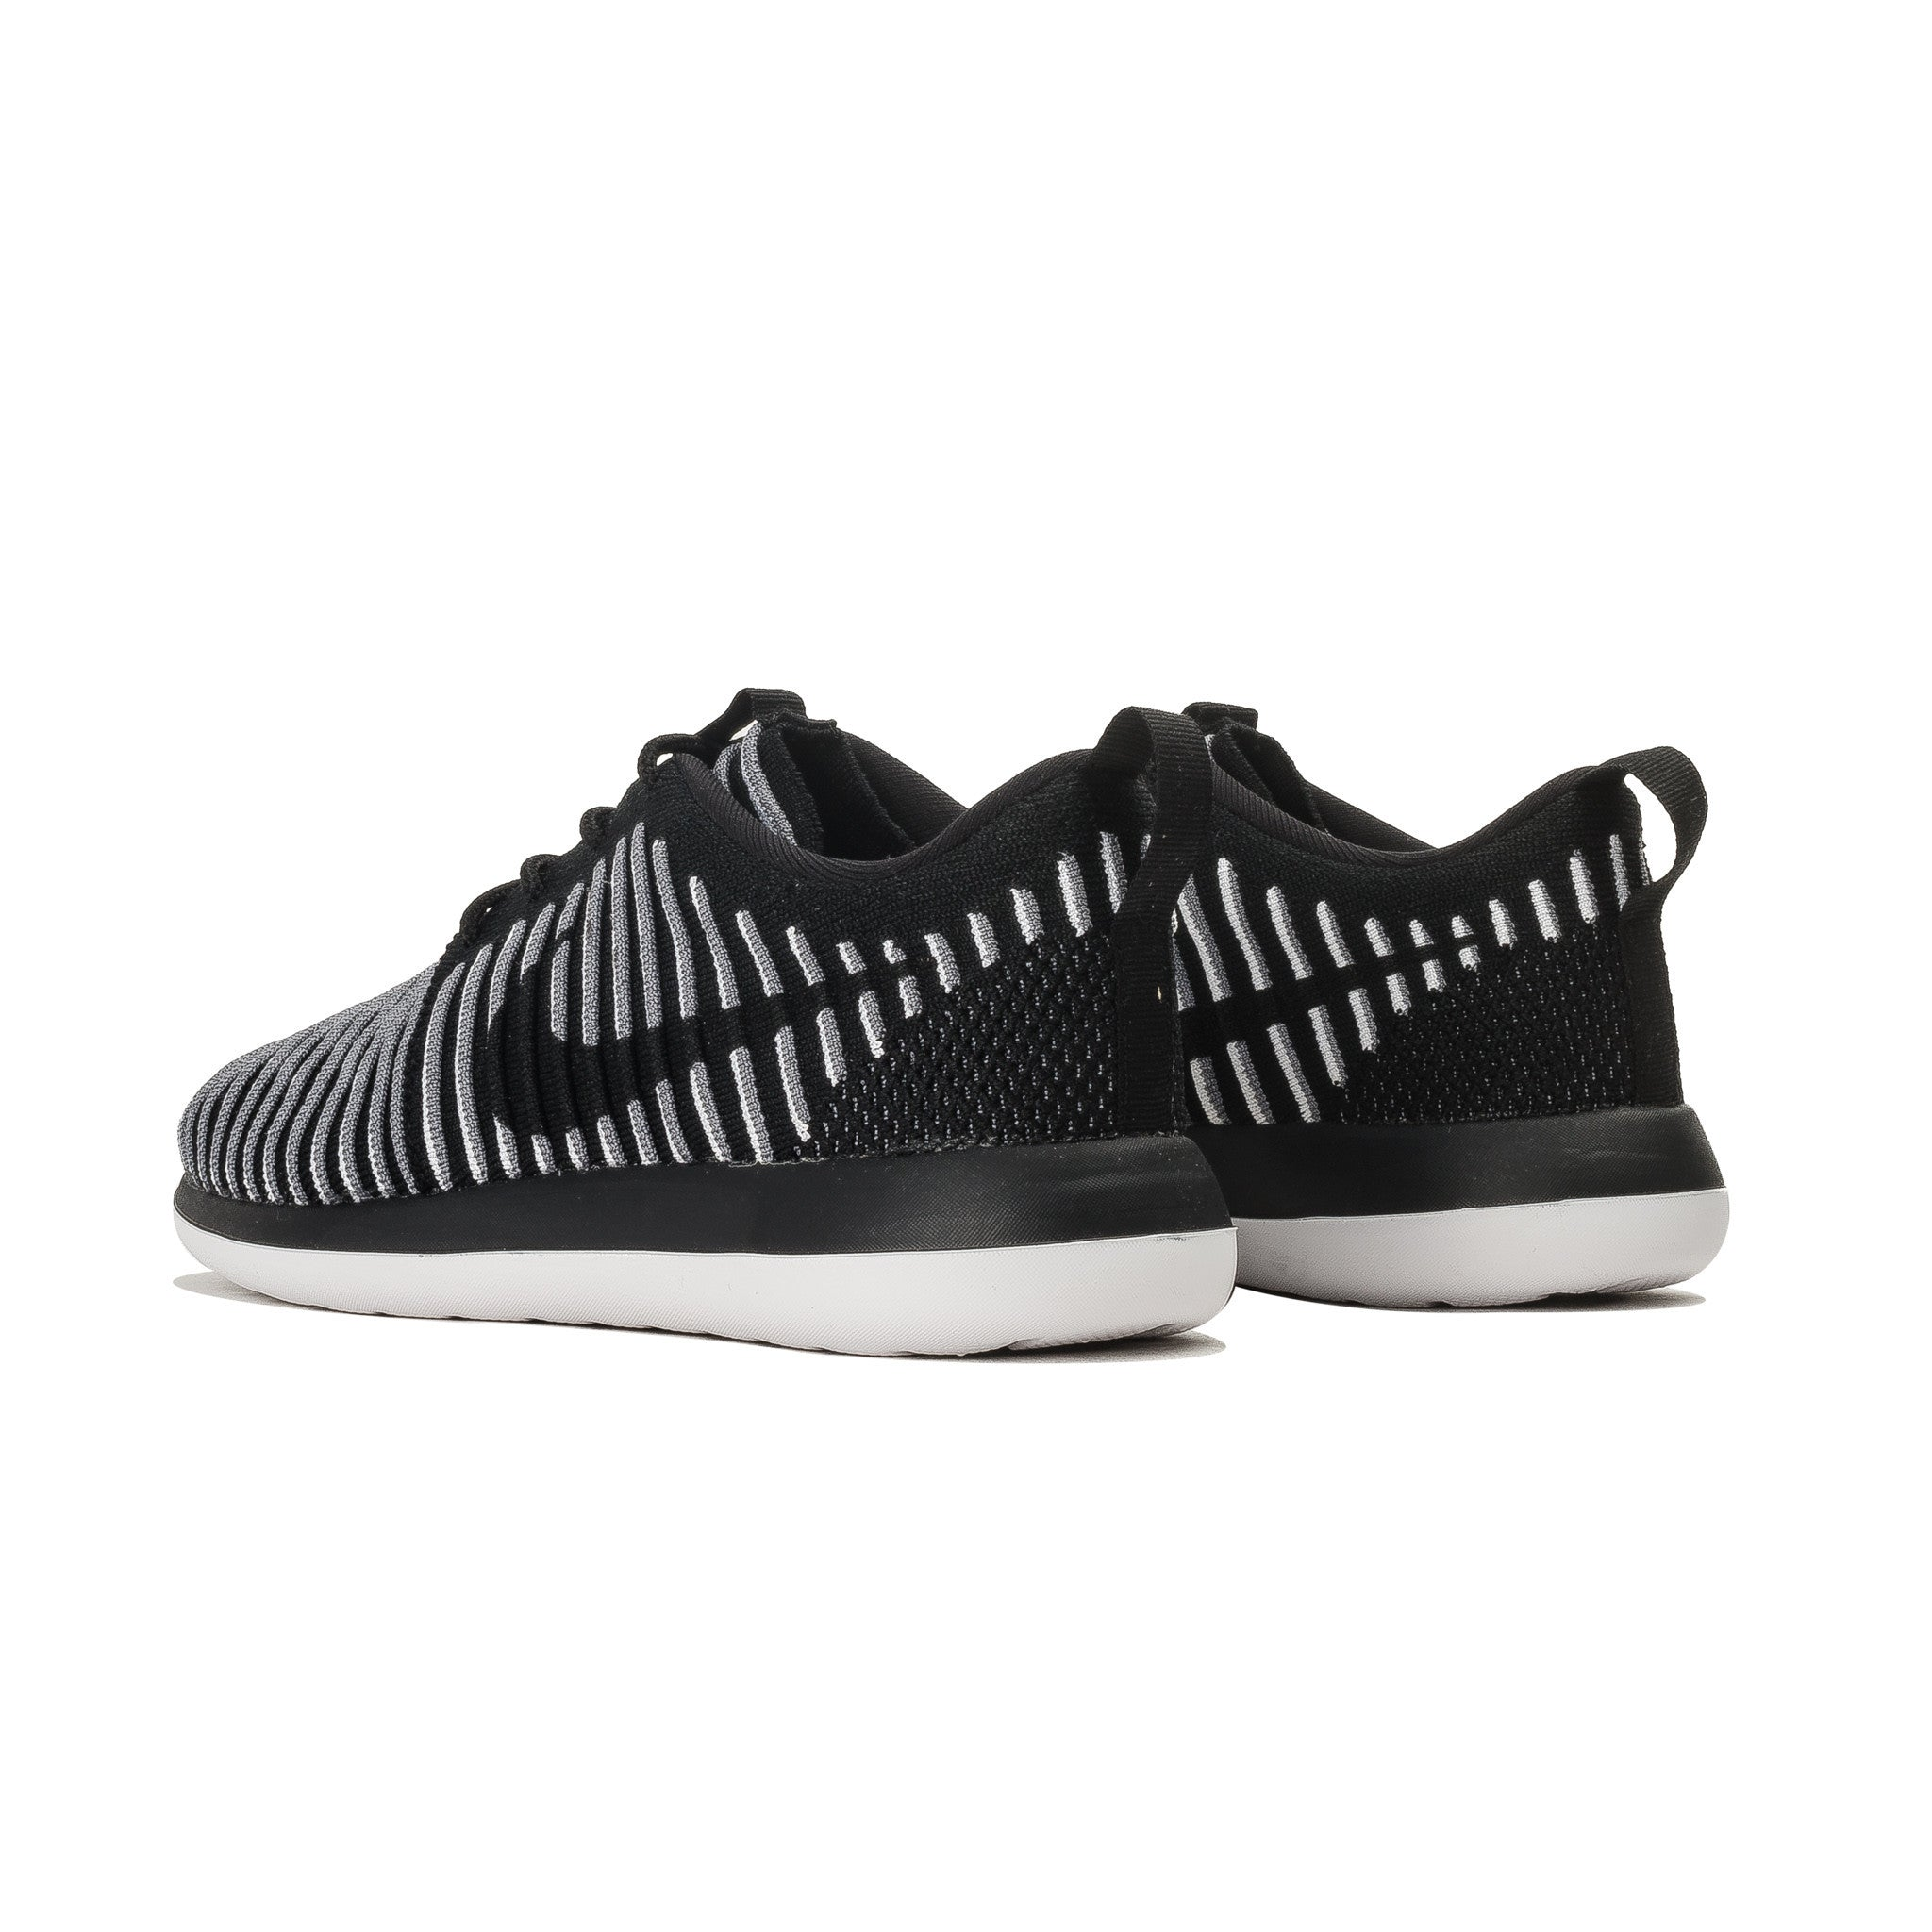 W Nike Roshe Two Flyknit 844929-001 Black